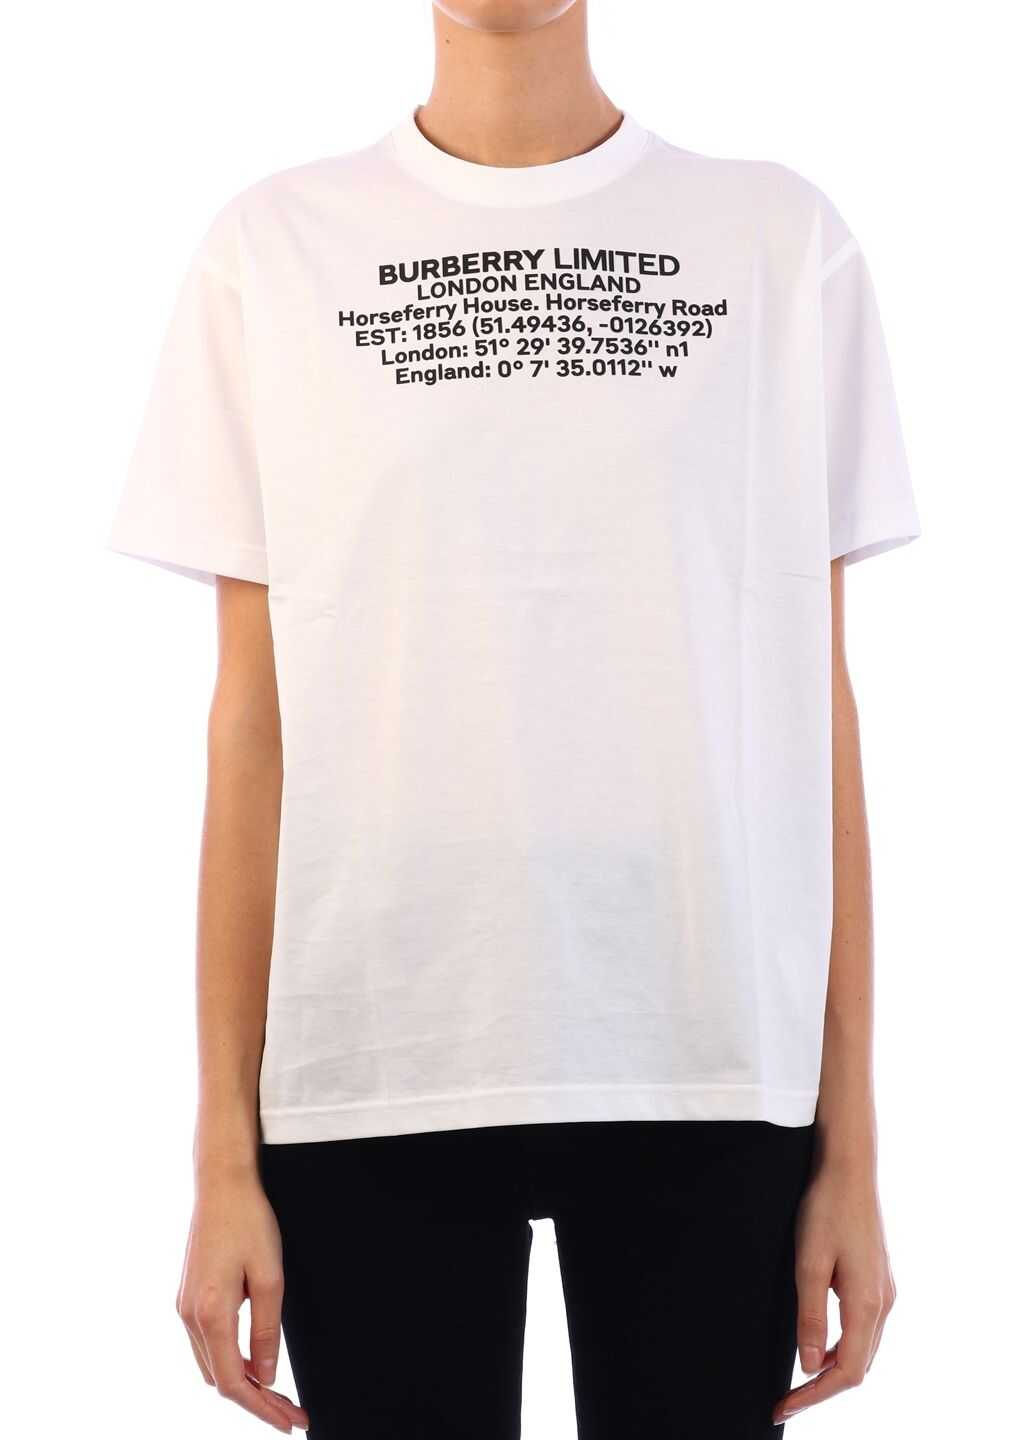 Burberry T-Shirt Geographic Coordinates White